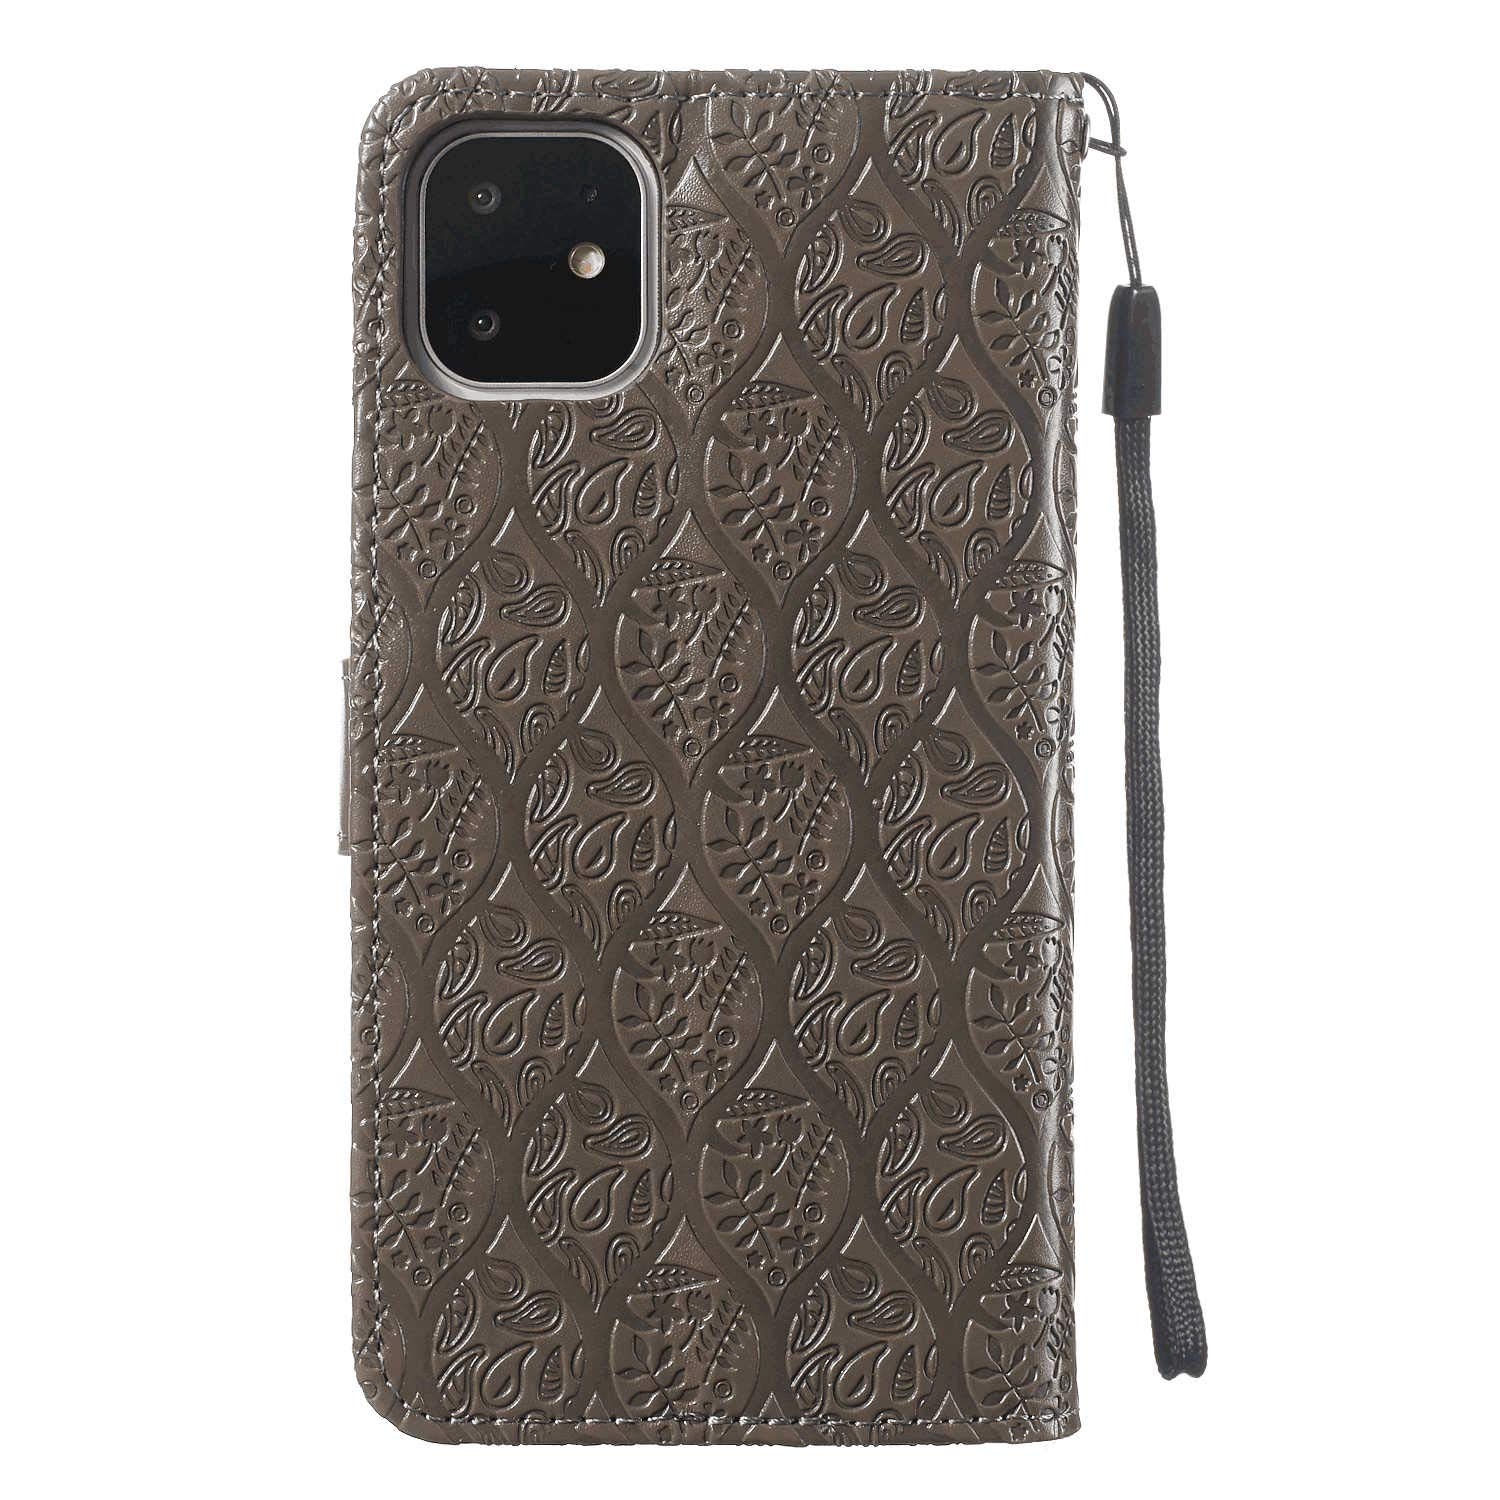 Leather Flip Case Fit for iPhone 11 Pro Max Blue Wallet Cover for iPhone 11 Pro Max